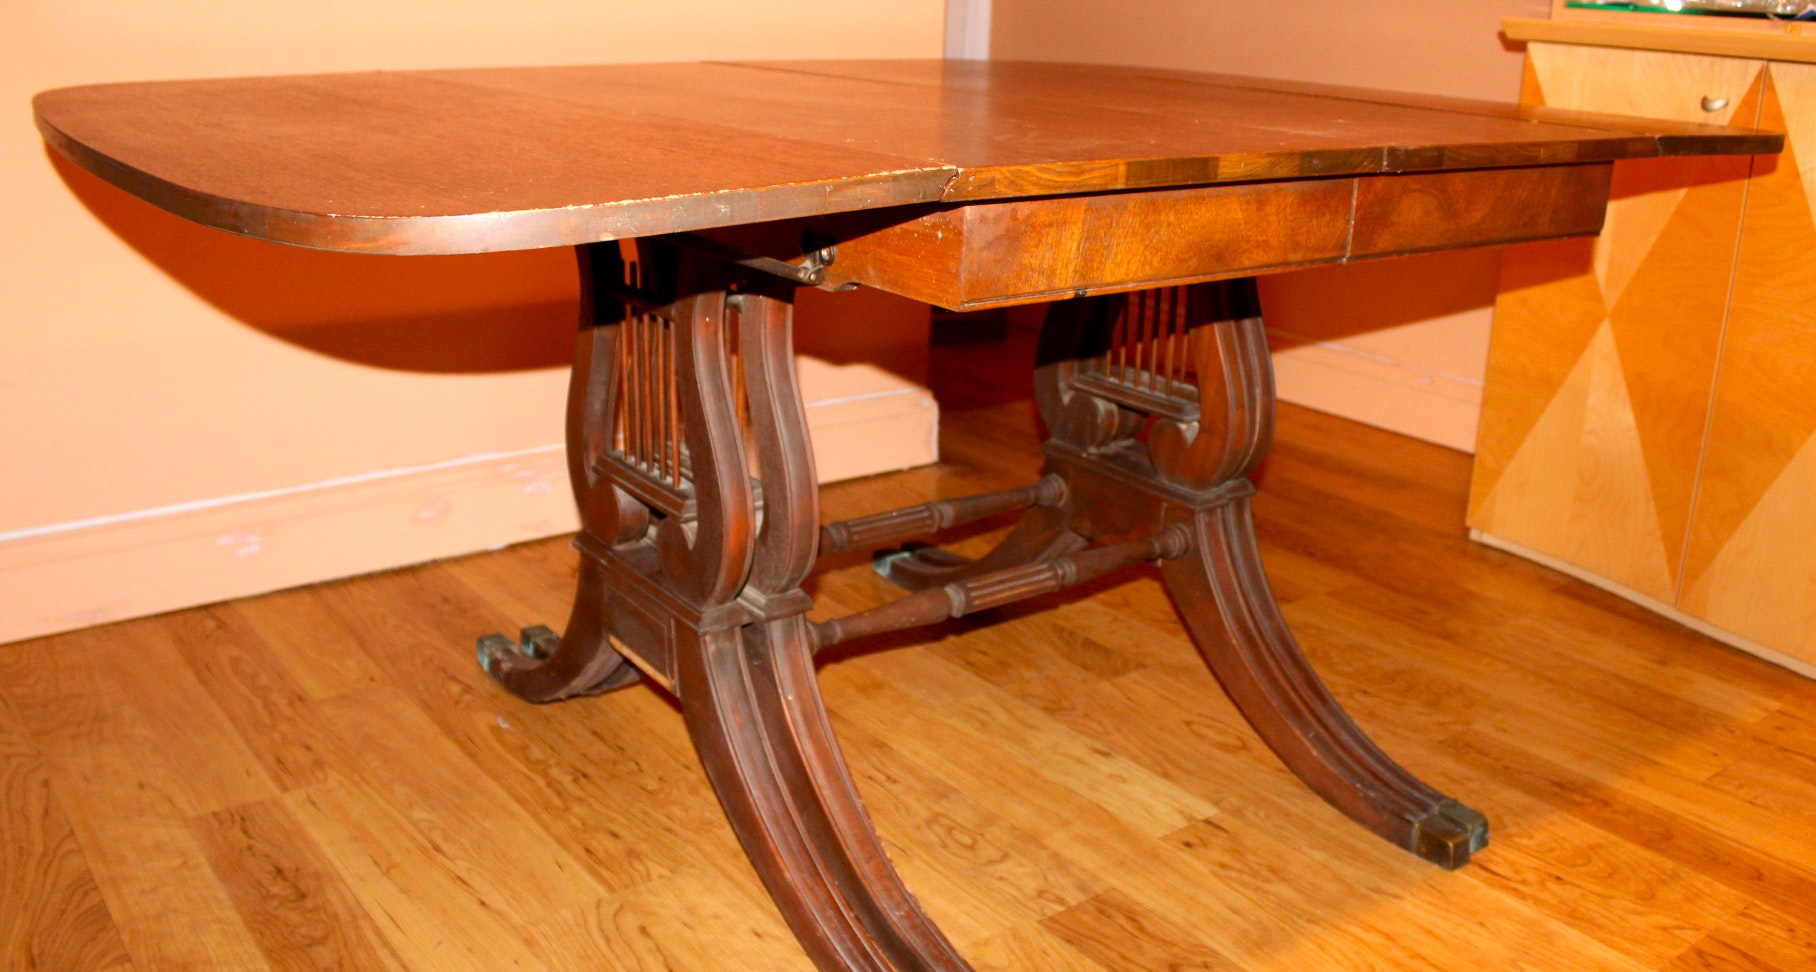 Rare Vintage Drexel Mahogany Dining Room Table with Lyre  : IMG0937JPGixlibrb 11 from www.ebth.com size 1400 x 749 jpeg 173kB